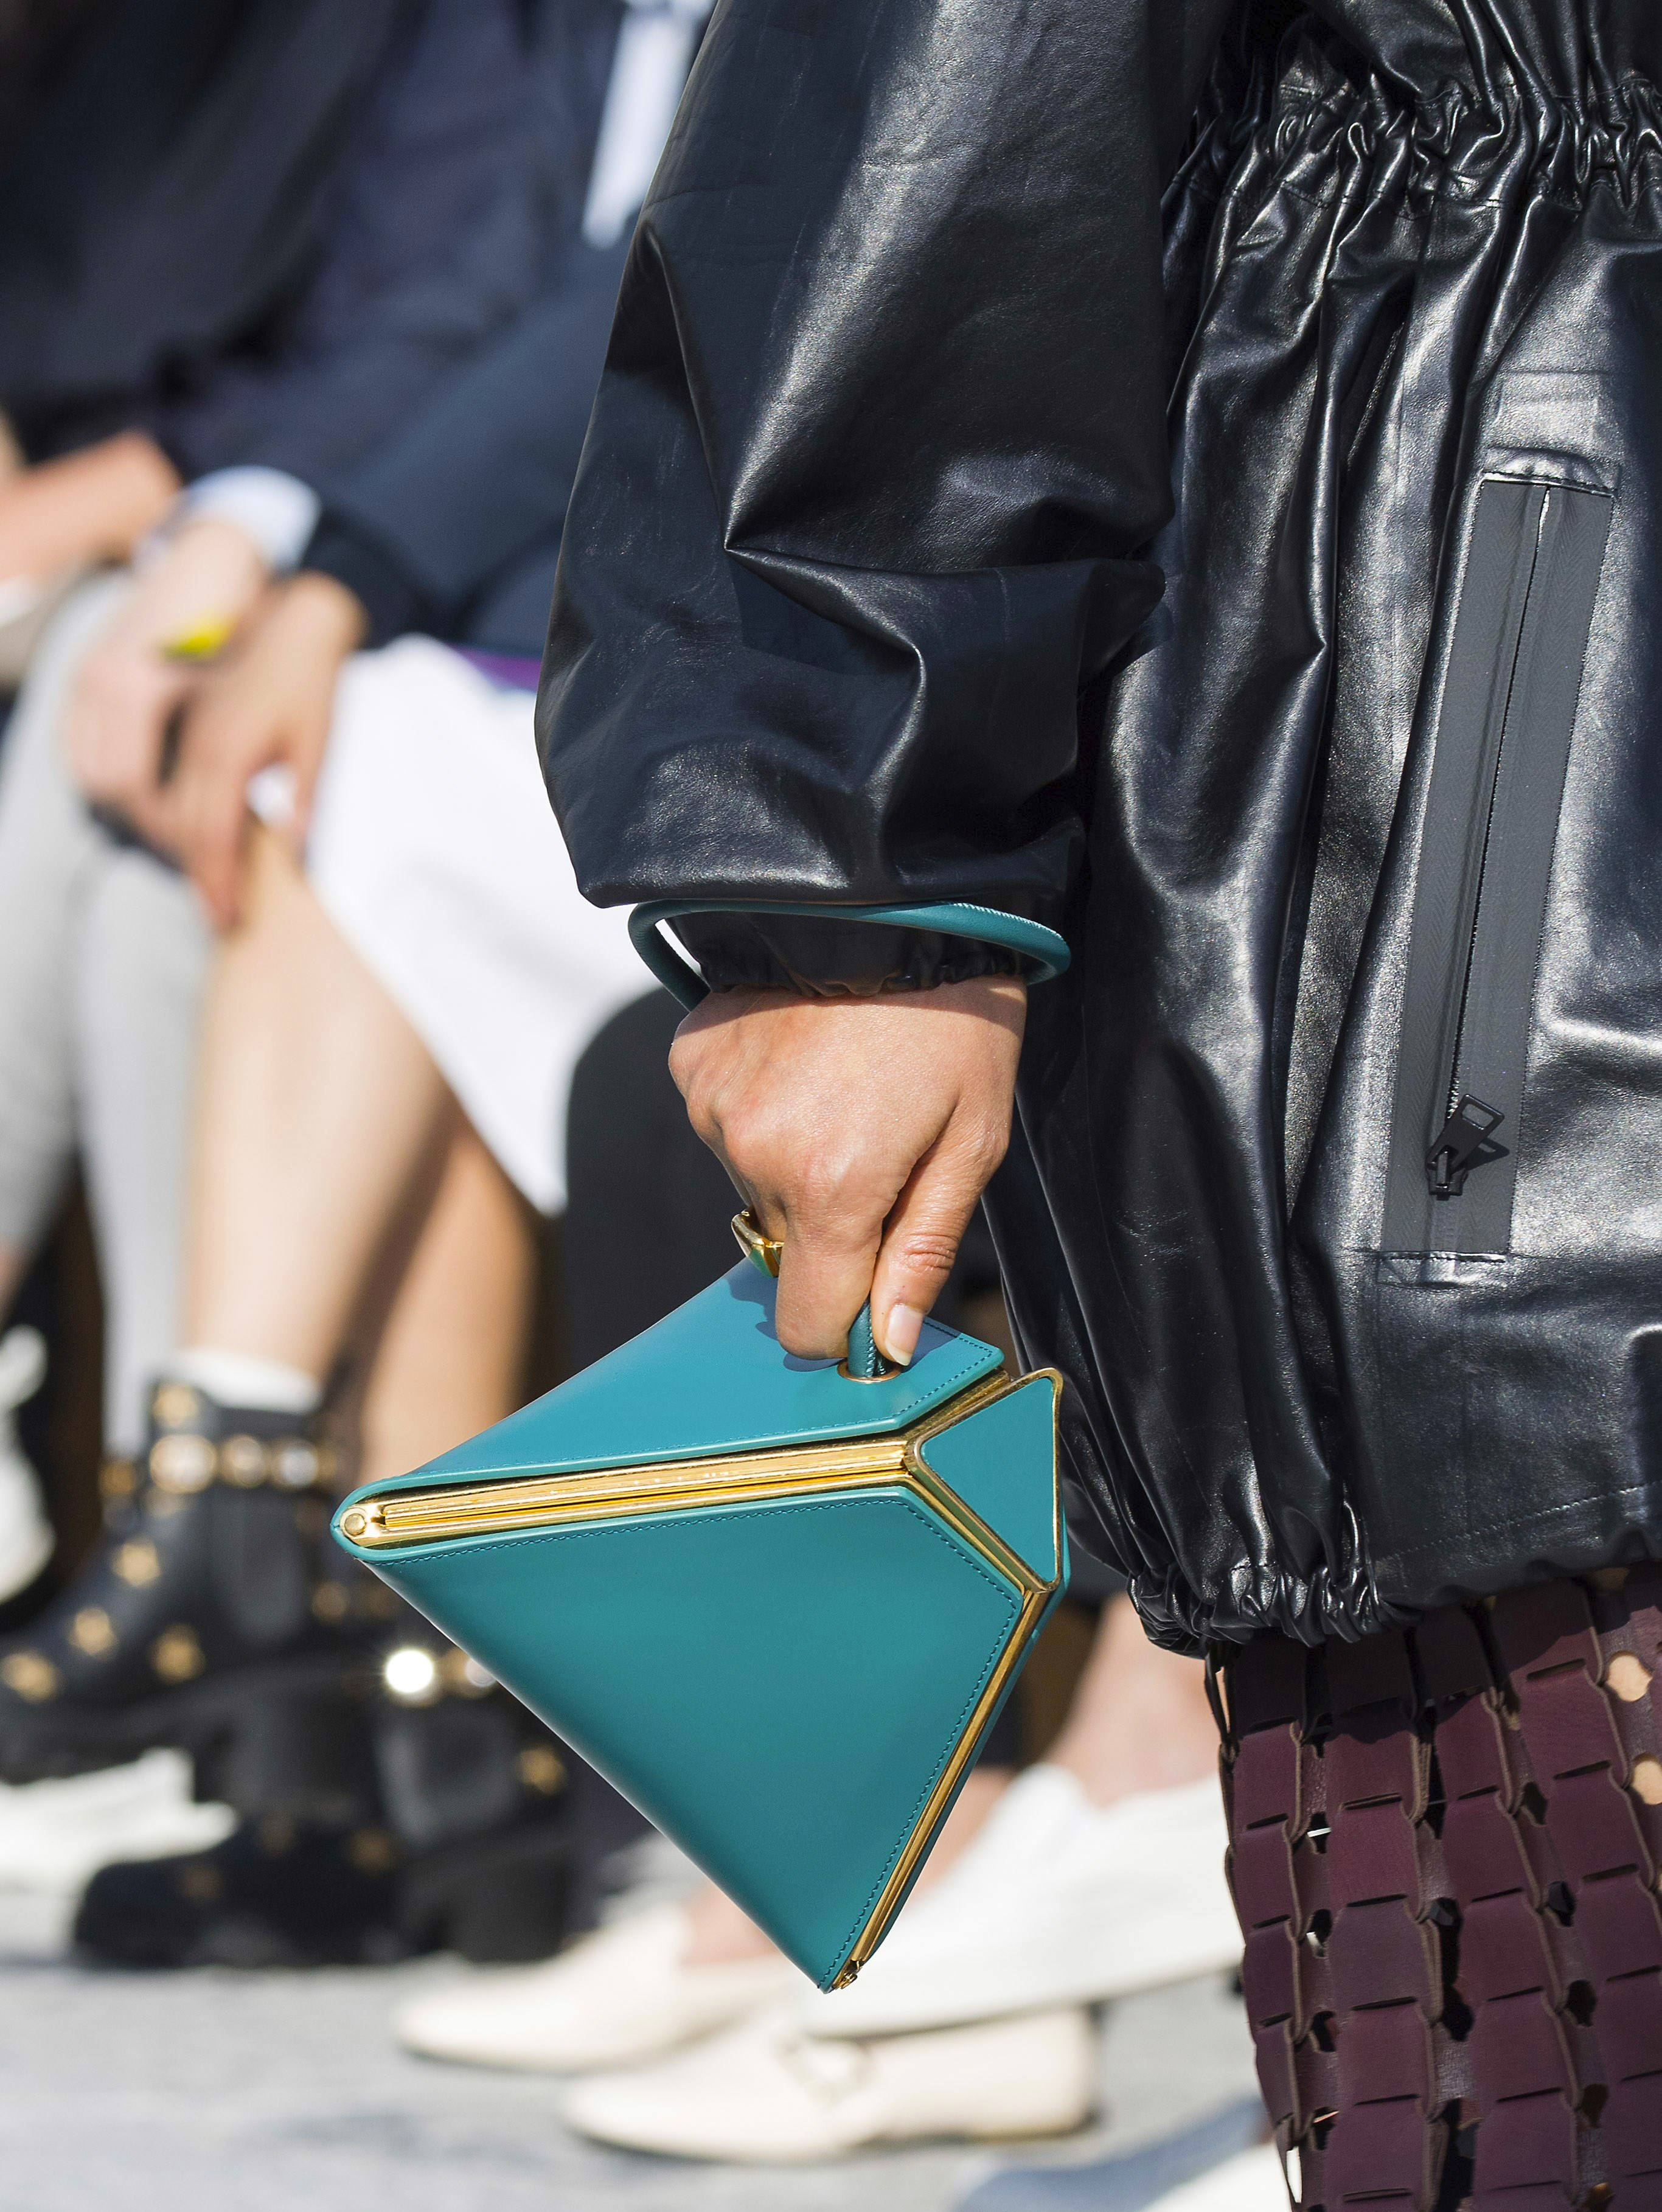 Green geometrical bag from the Bottega Veneta Fall 2019 Runway Bag Collection